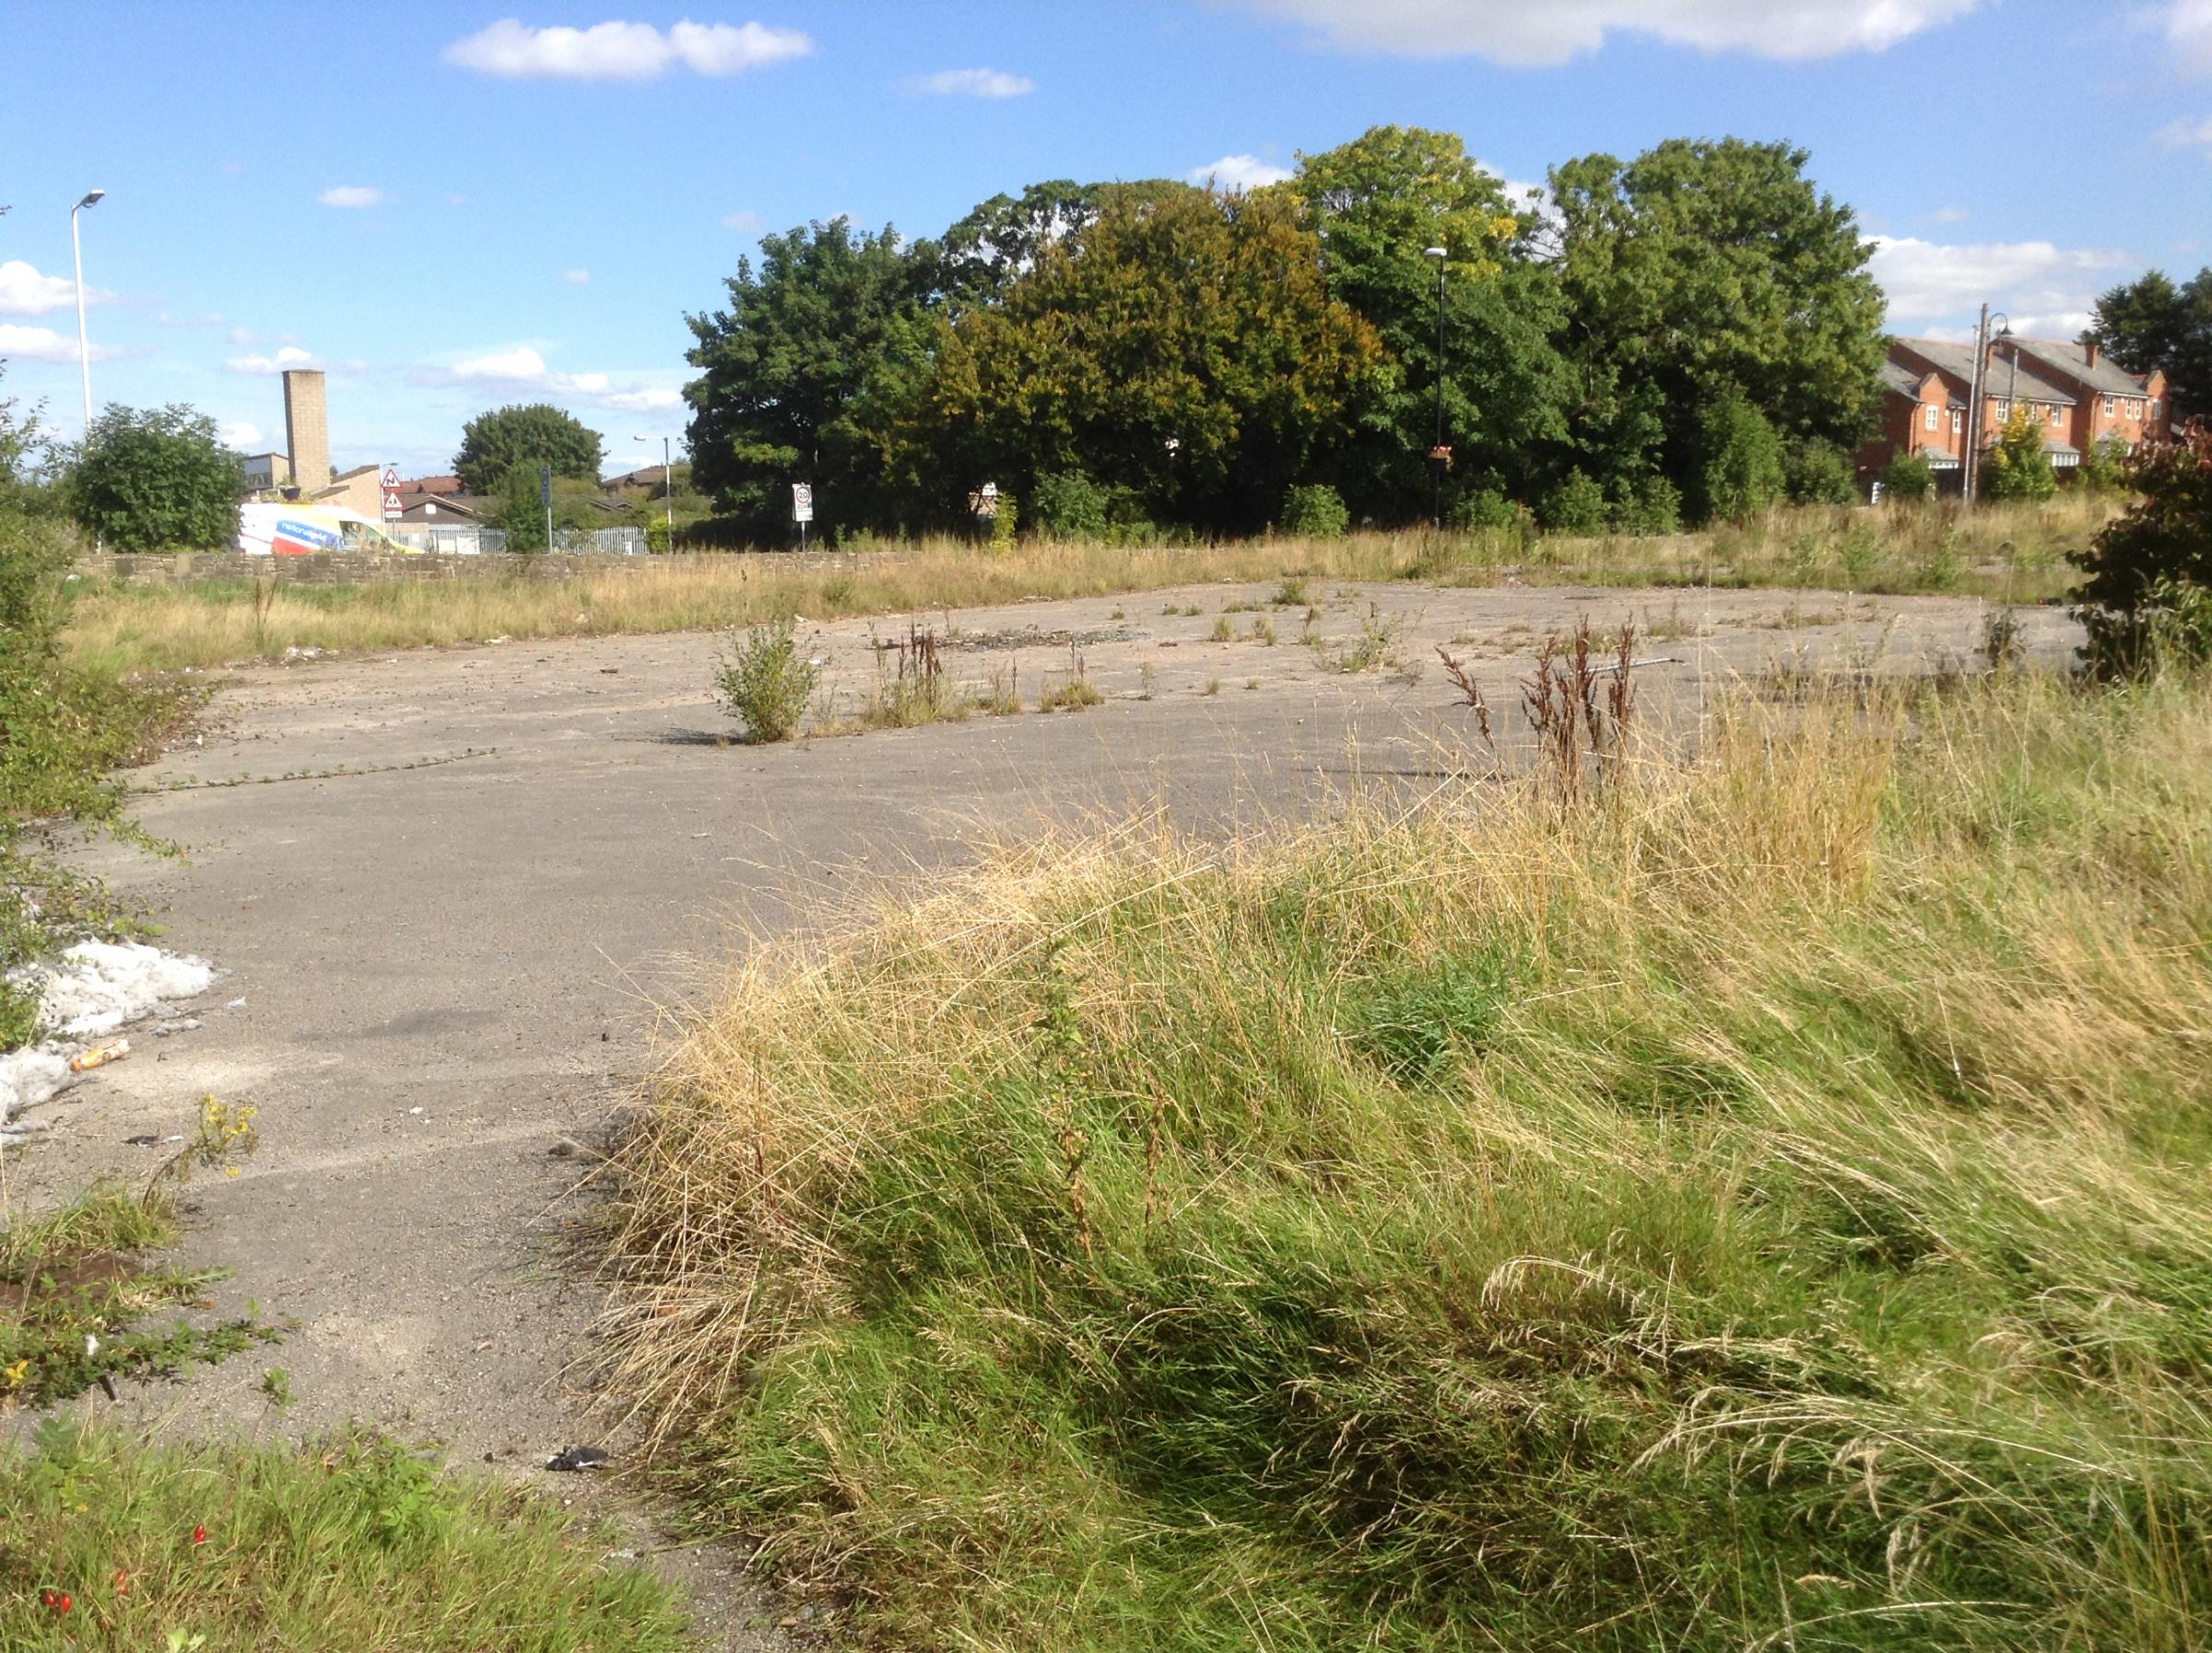 The derelict site of The Corsair Pub earmarked for redevelopment